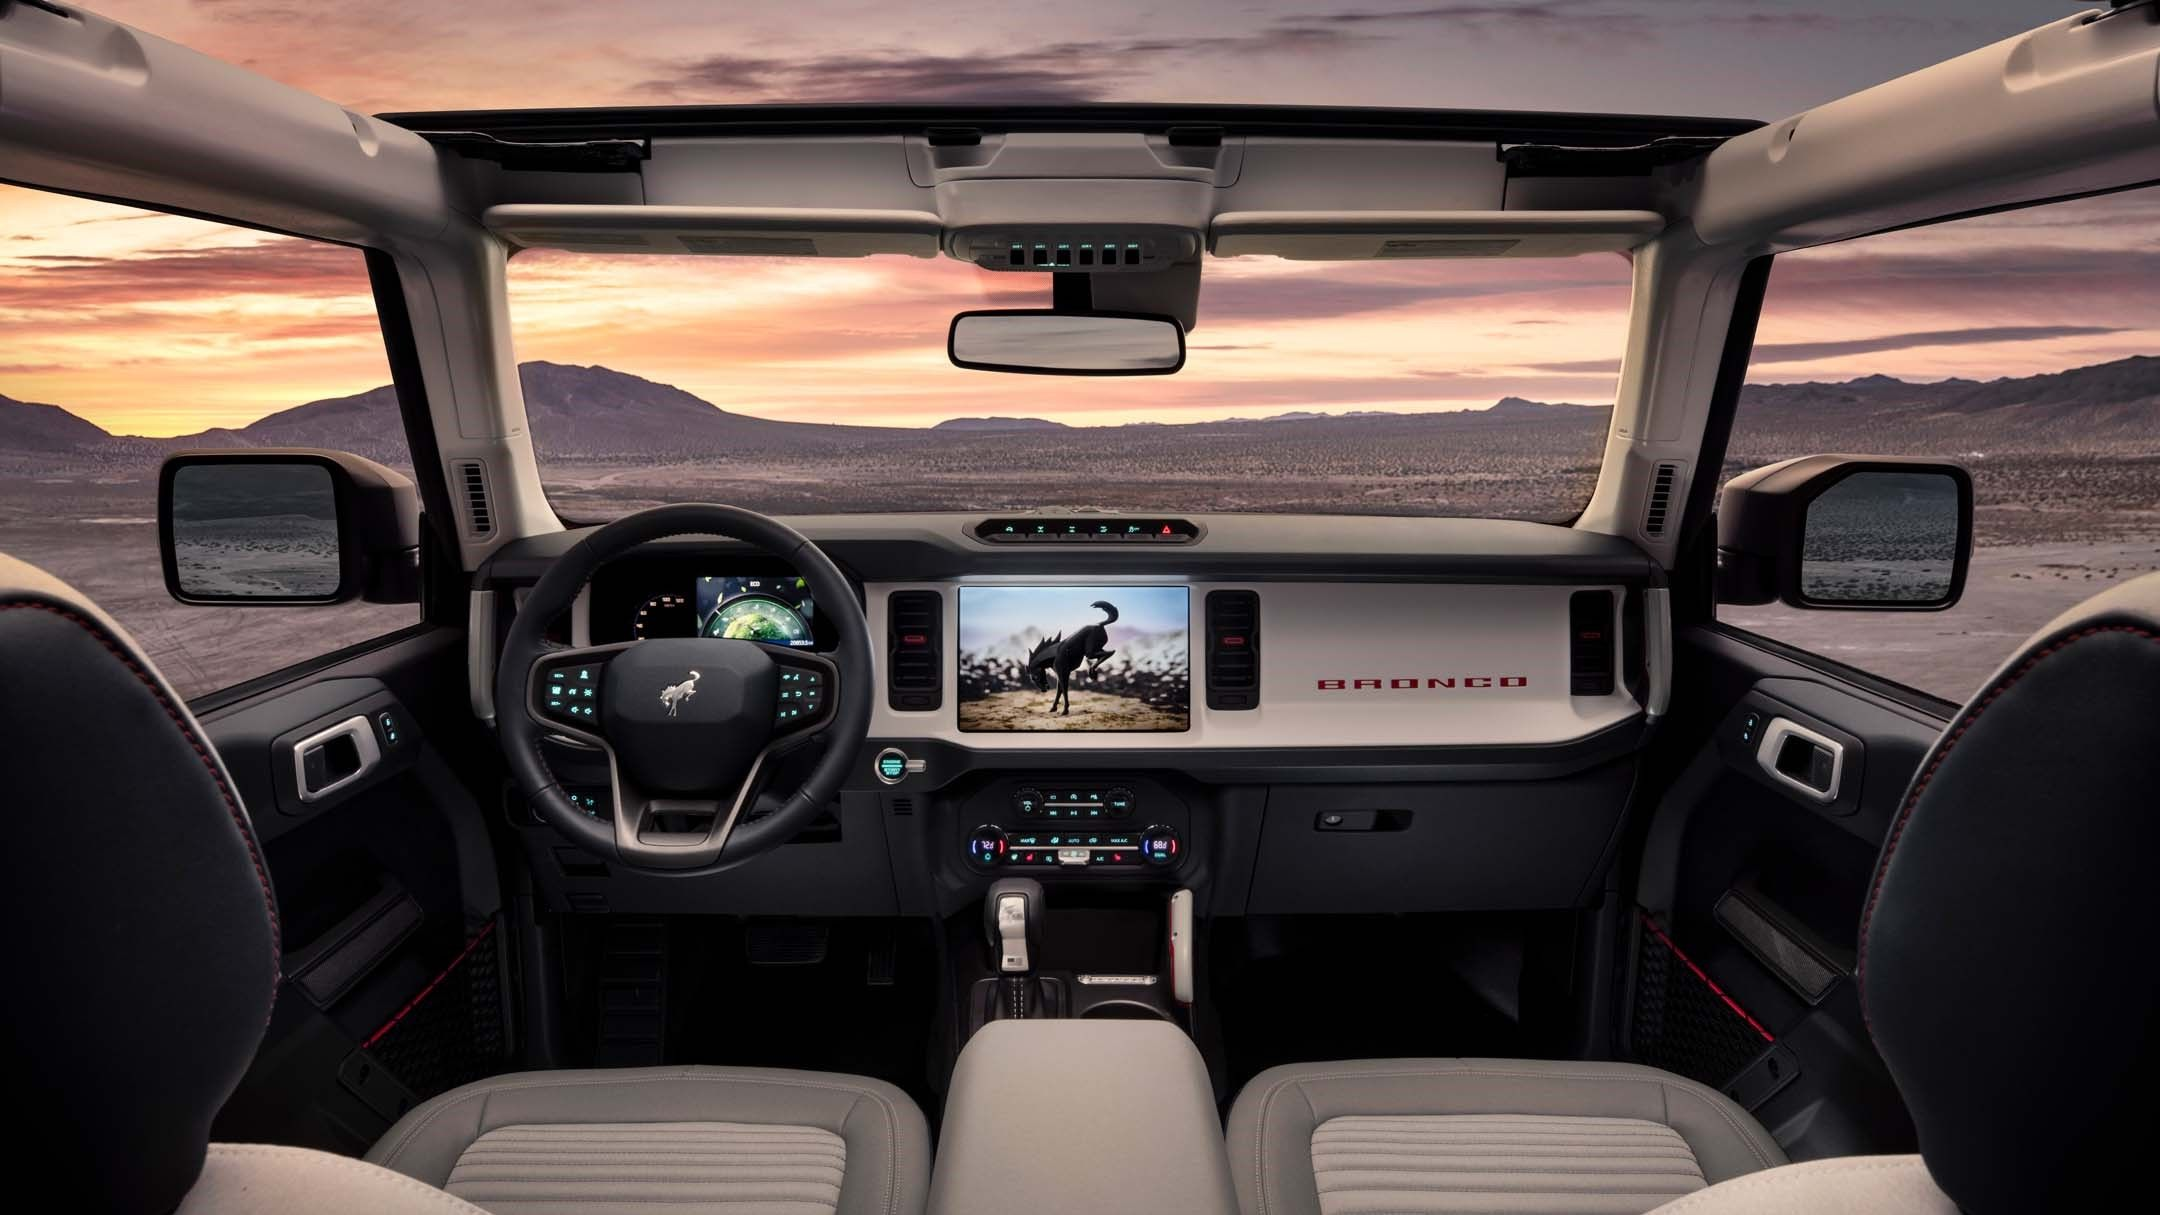 2021 Ford Bronco SUV cockpit area wallpaper